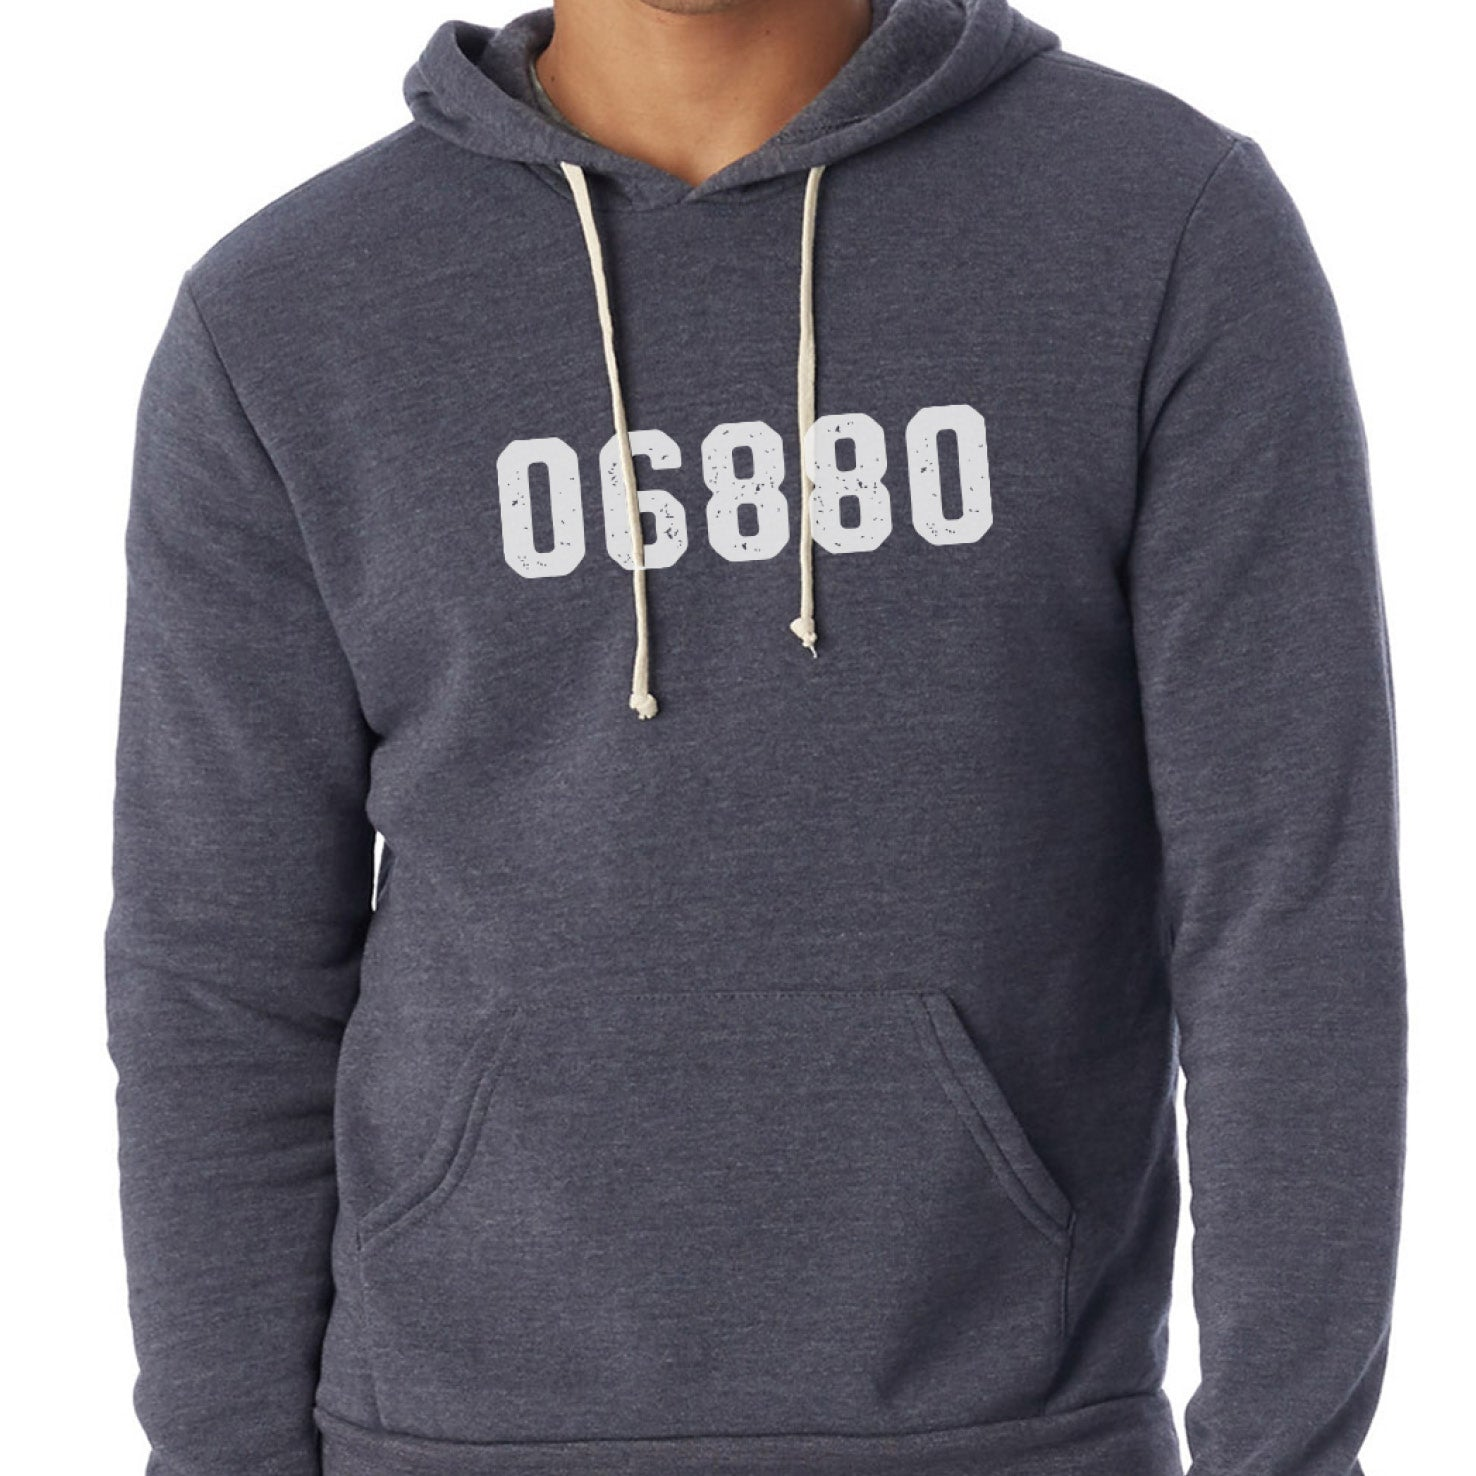 Westport Sweatshirt by Townee - Post Code Hoodie (men)